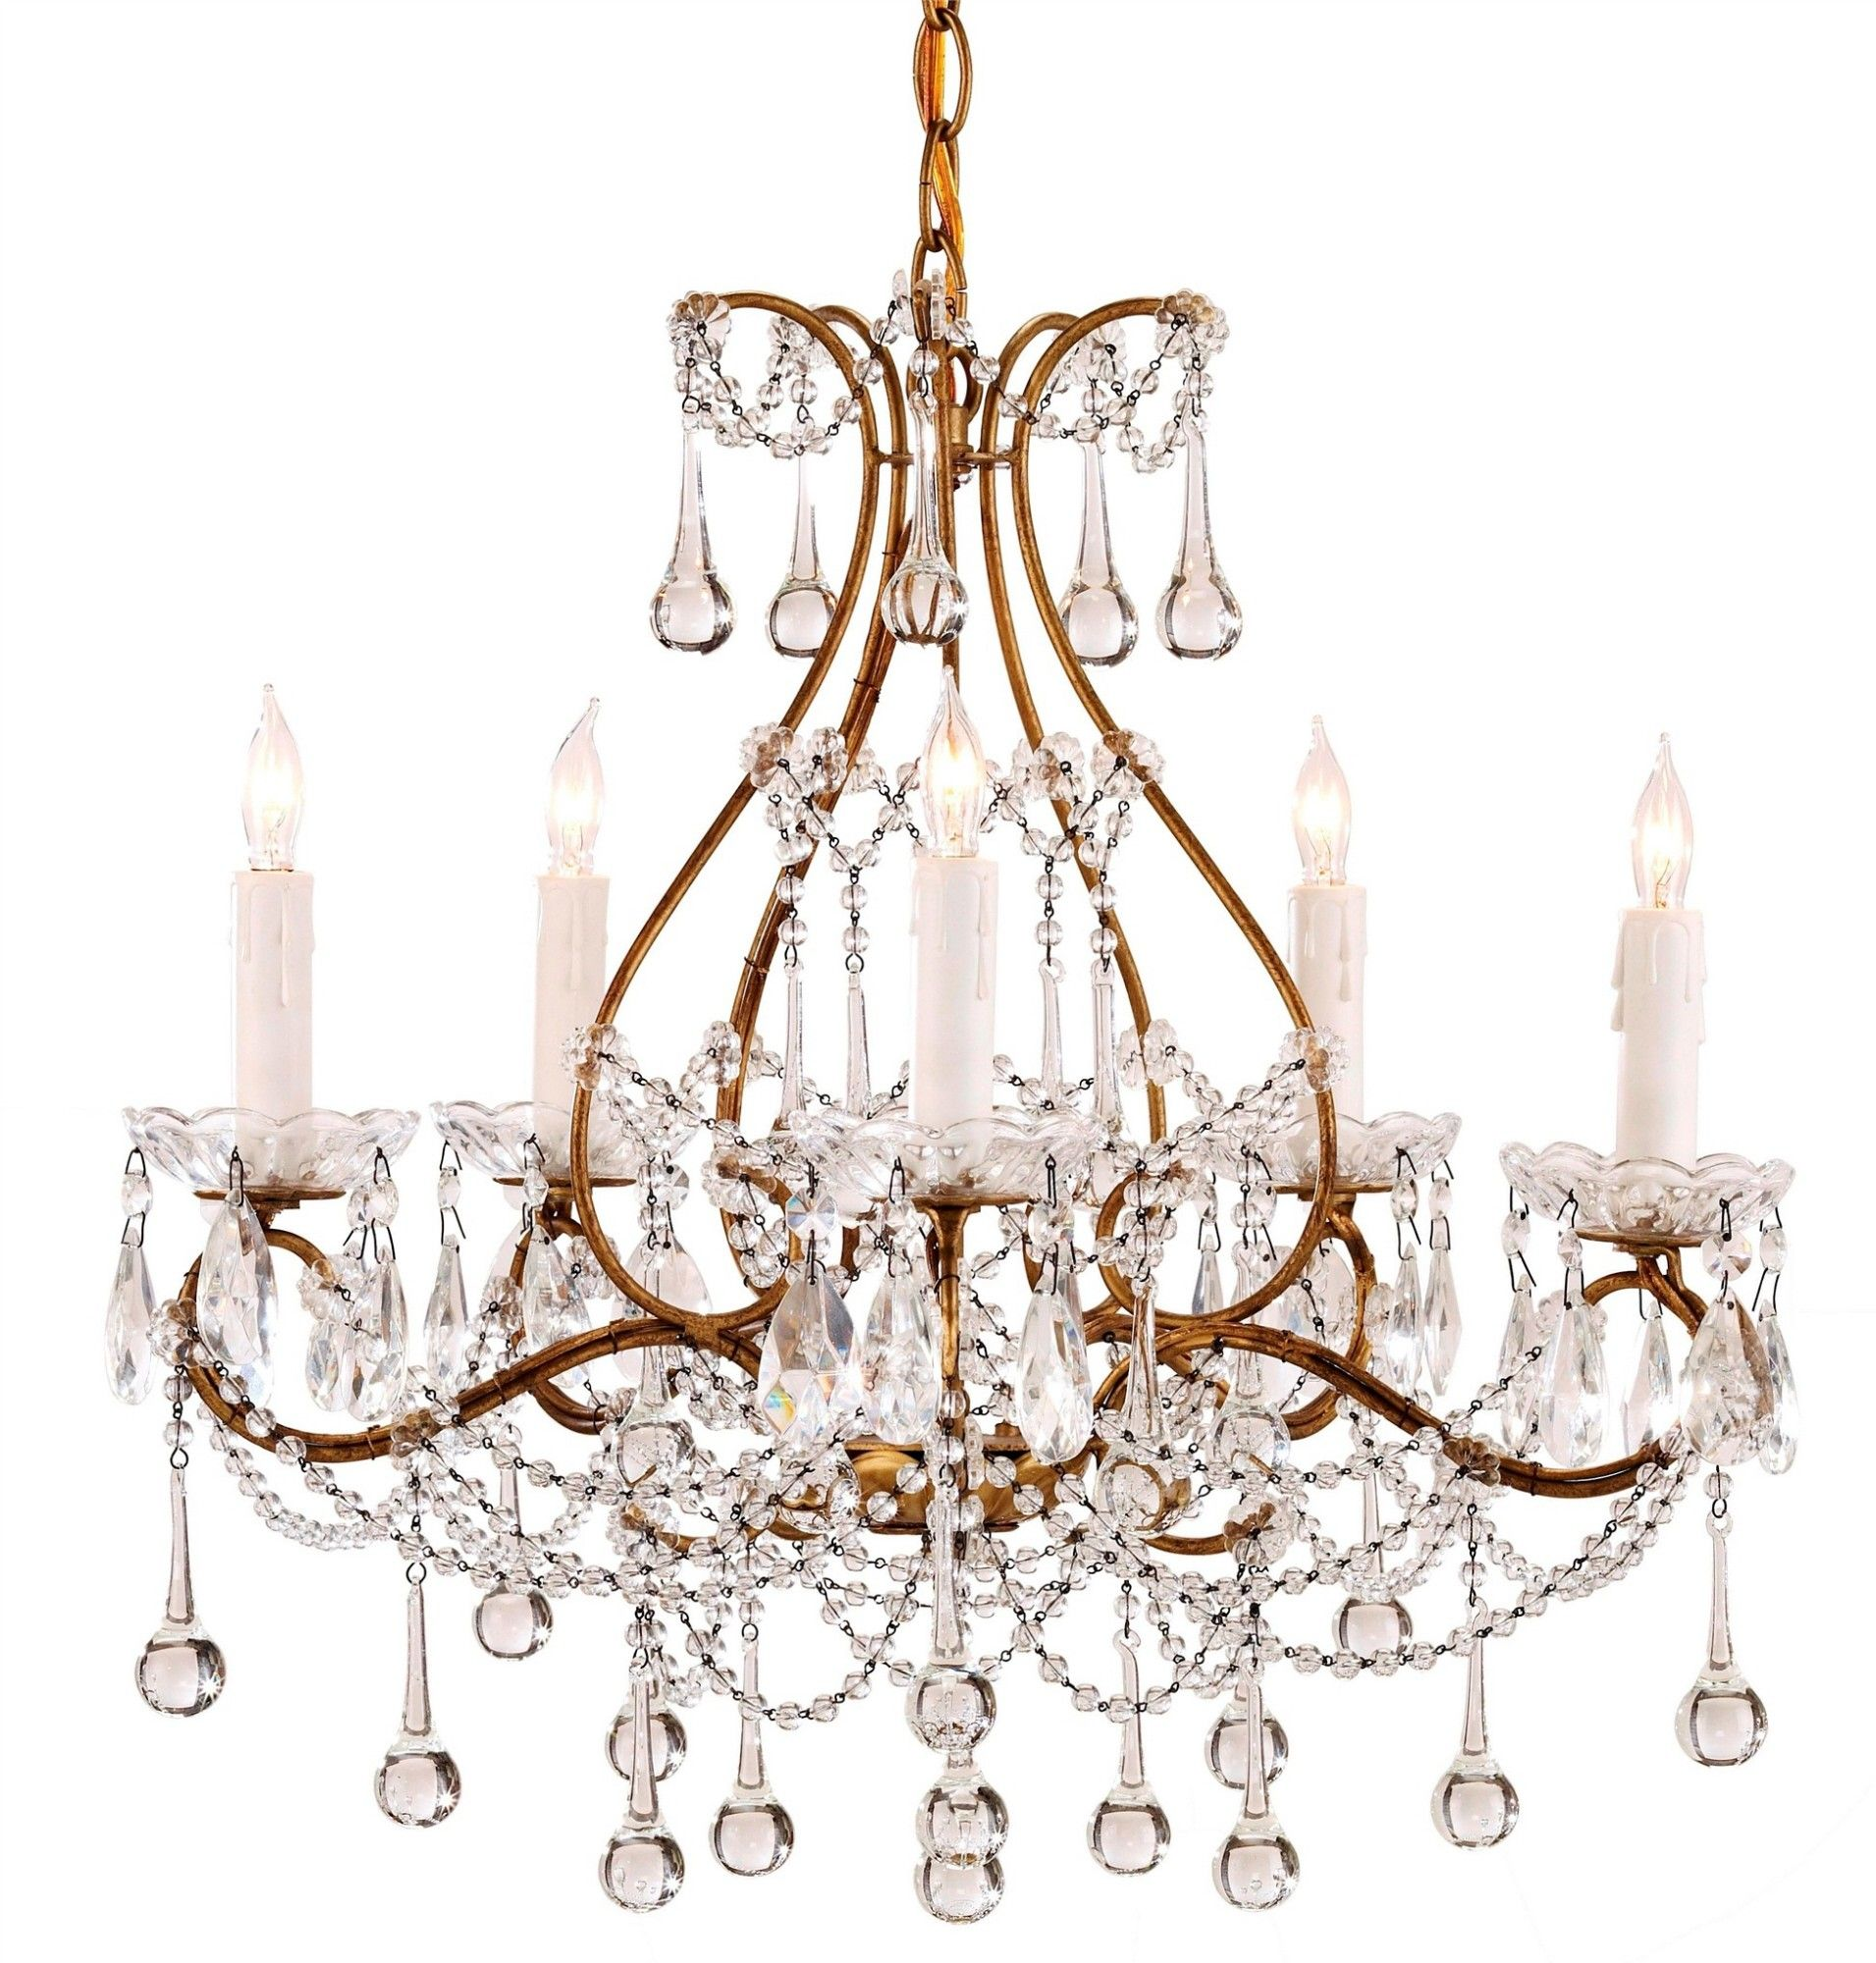 The Paramour Chandelier, with its array of teardrops and strands of crystal, is the embodiment of grace and splendor. The classic contour's rich Smoke Gold finish confers a sense of grandeur to this time-honored style. The chandelier measures 19